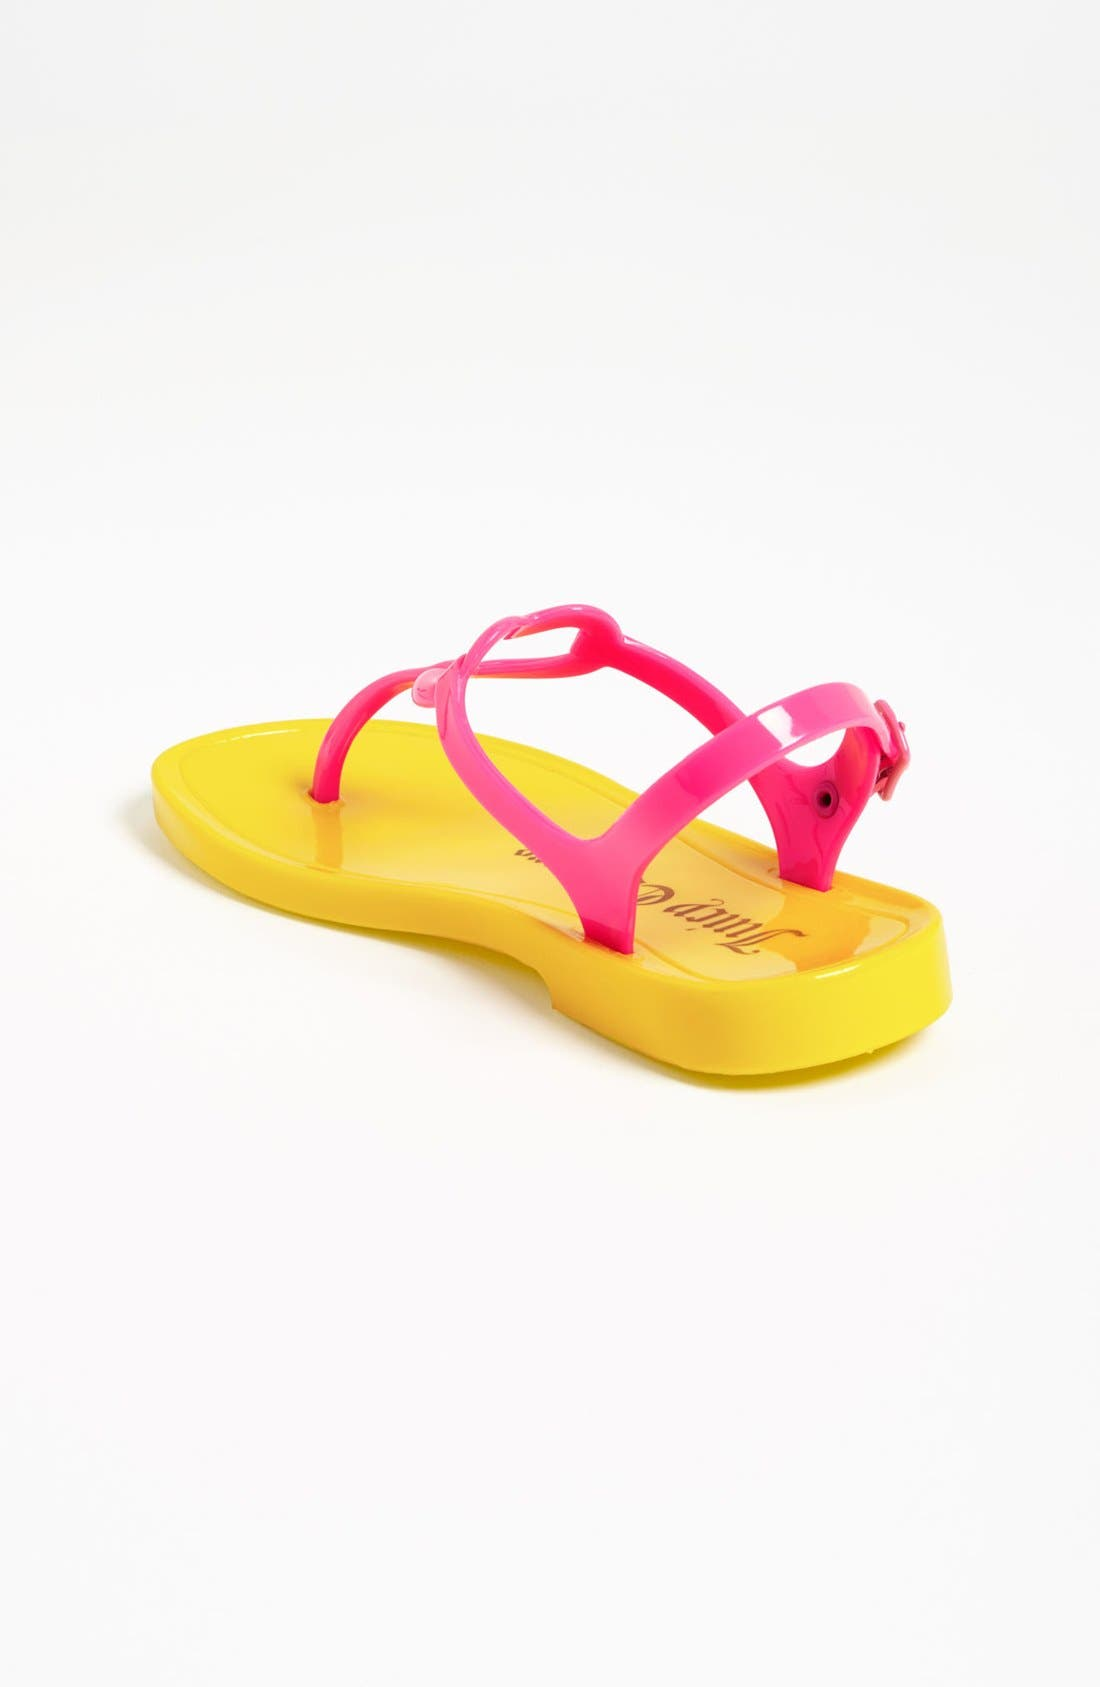 Alternate Image 2  - Juicy Couture 'Rory' Sandal (Toddler, Little Kid & Big Kid)